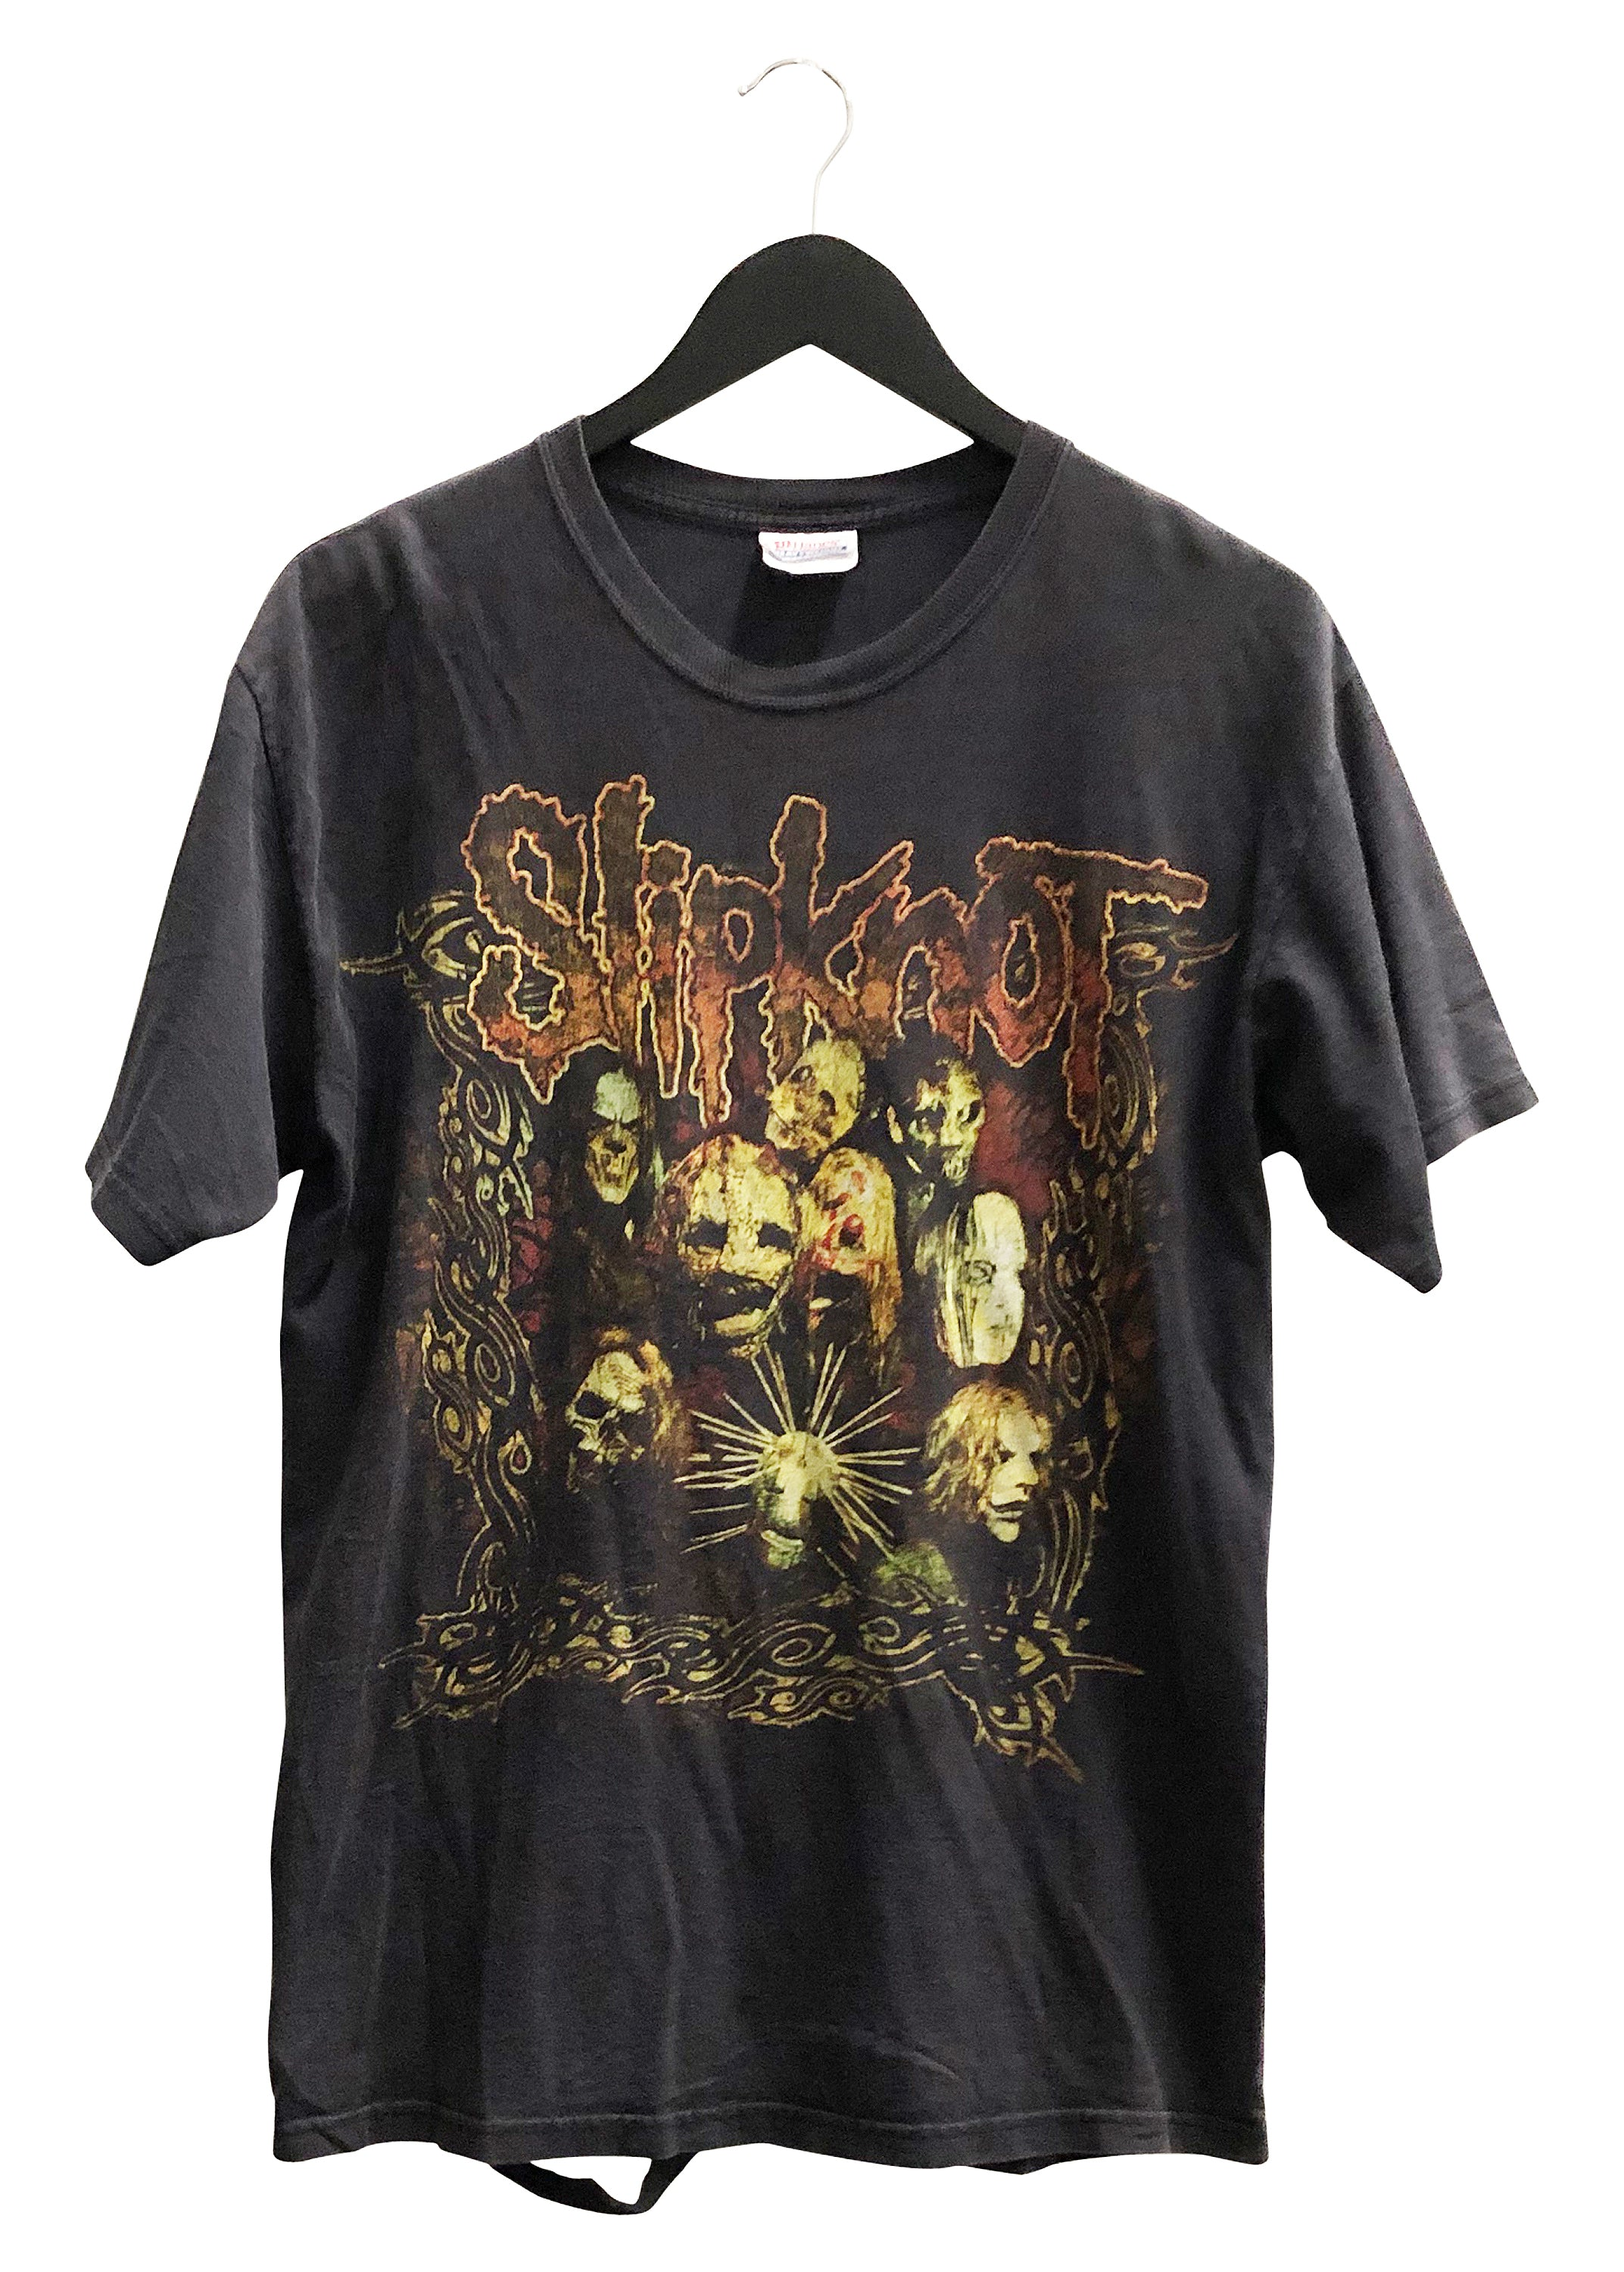 SLIPKNOT 'THE BLISTER EXISTS' VINTAGE TEE